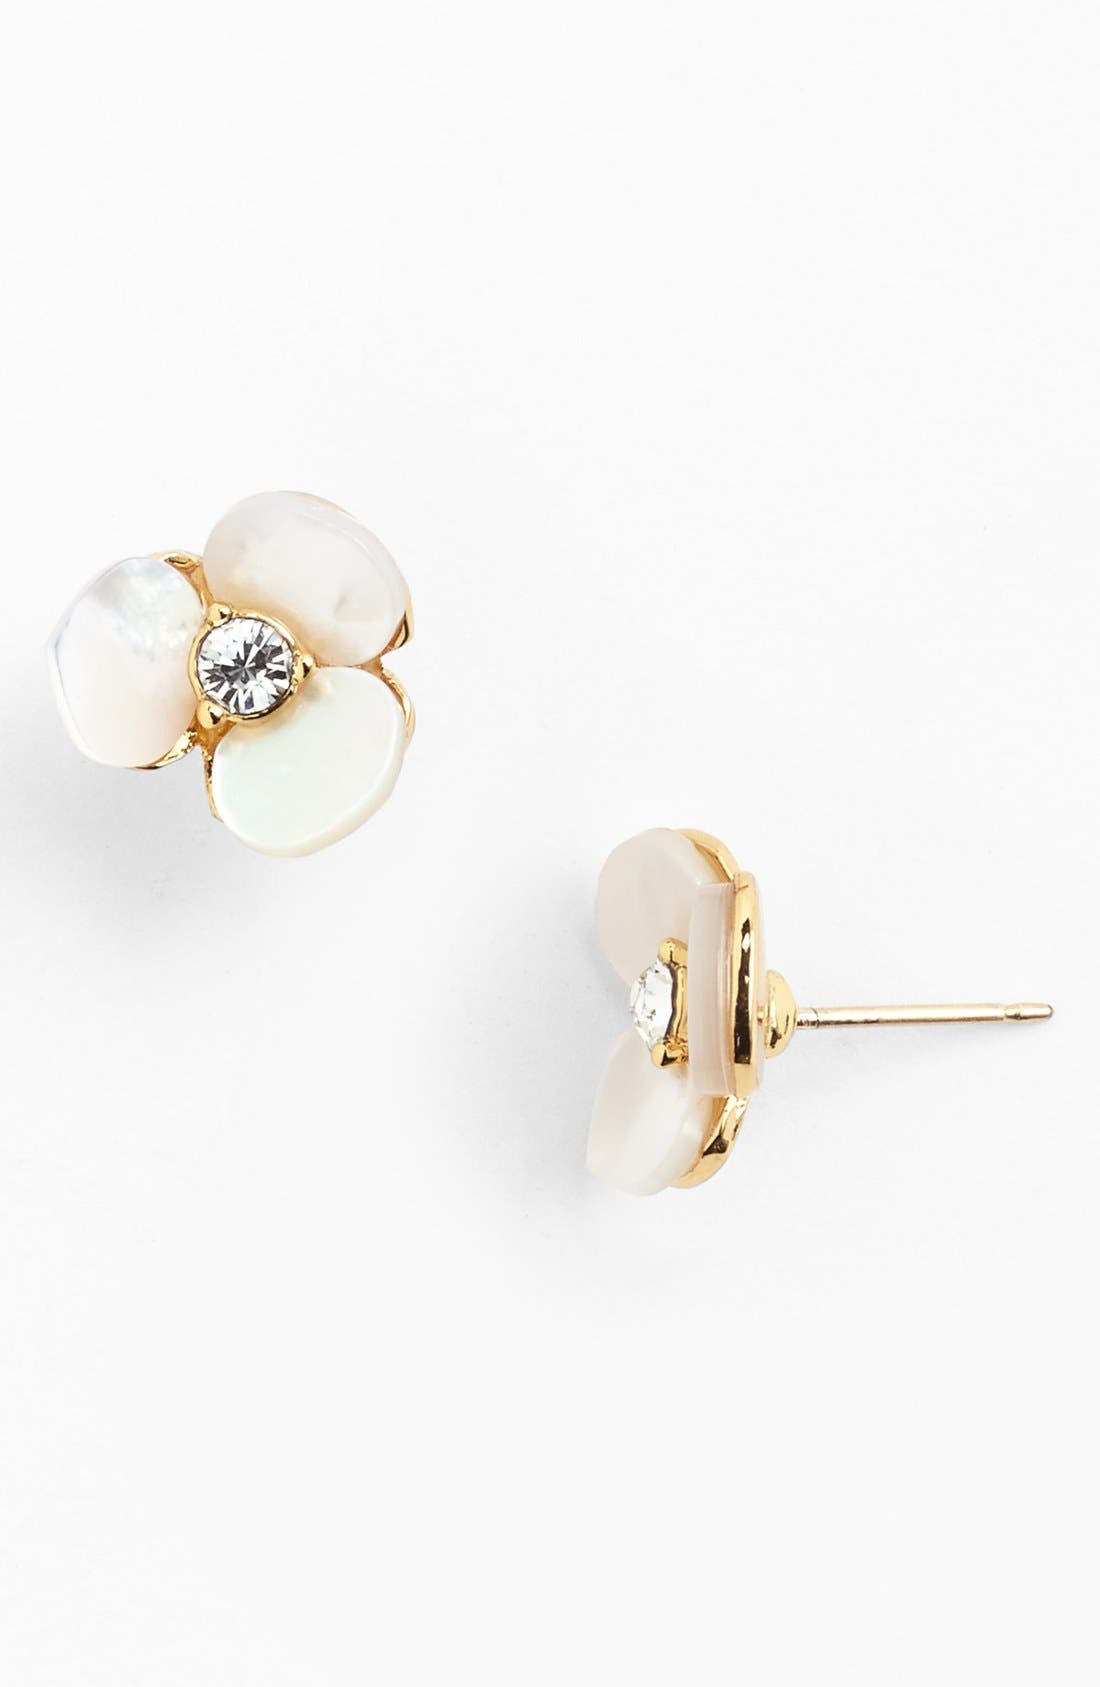 KATE SPADE NEW YORK, 'disco pansy' stud earrings, Main thumbnail 1, color, CREAM/ CLEAR/ GOLD